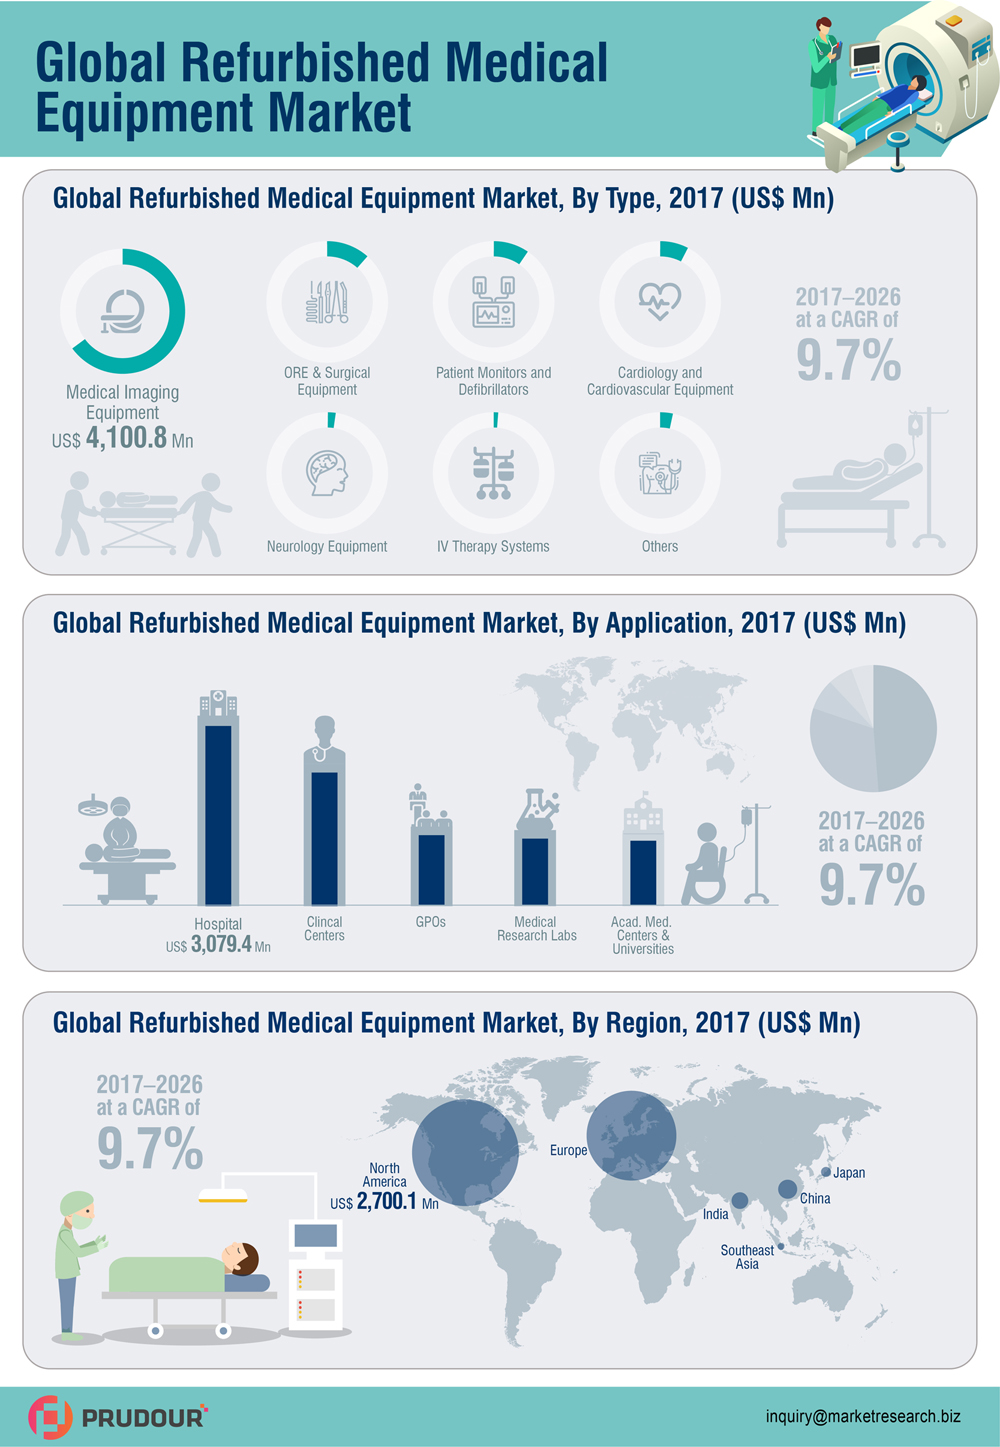 global-refurbished-medical-equipment-market-infographic-plaza